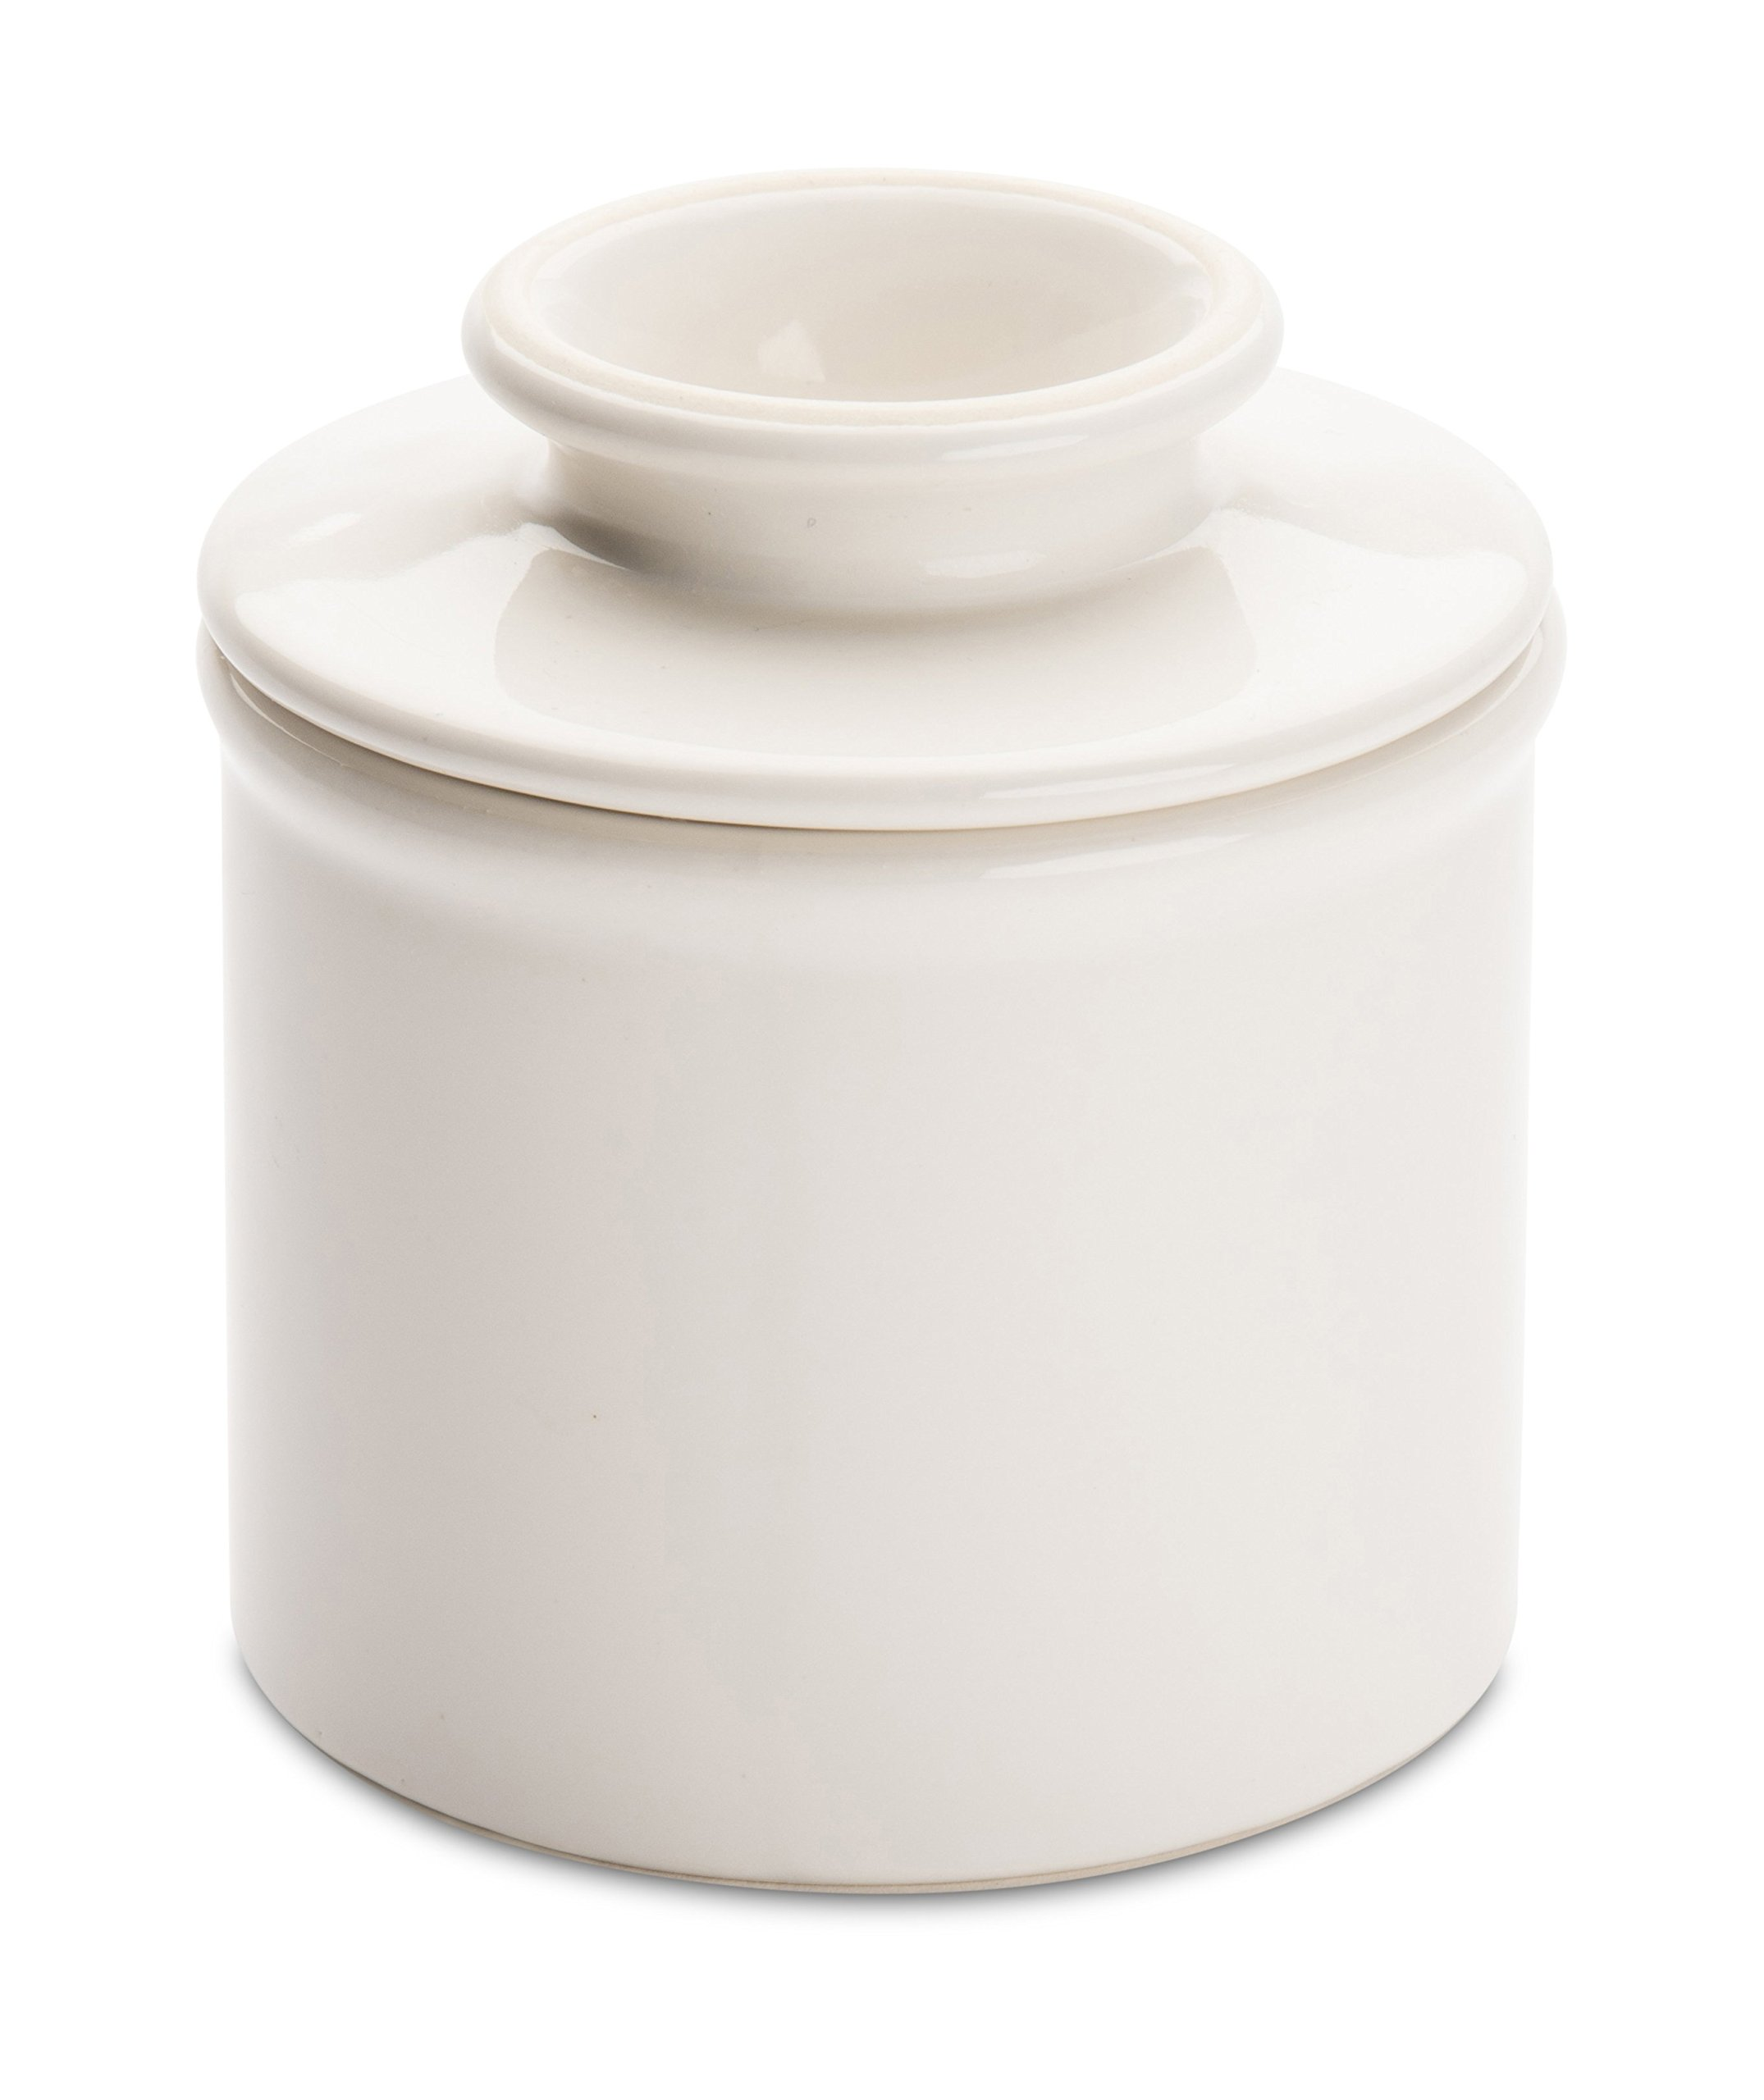 American Mug Pottery Butter Keeper/Butter Dish, Made in USA, White